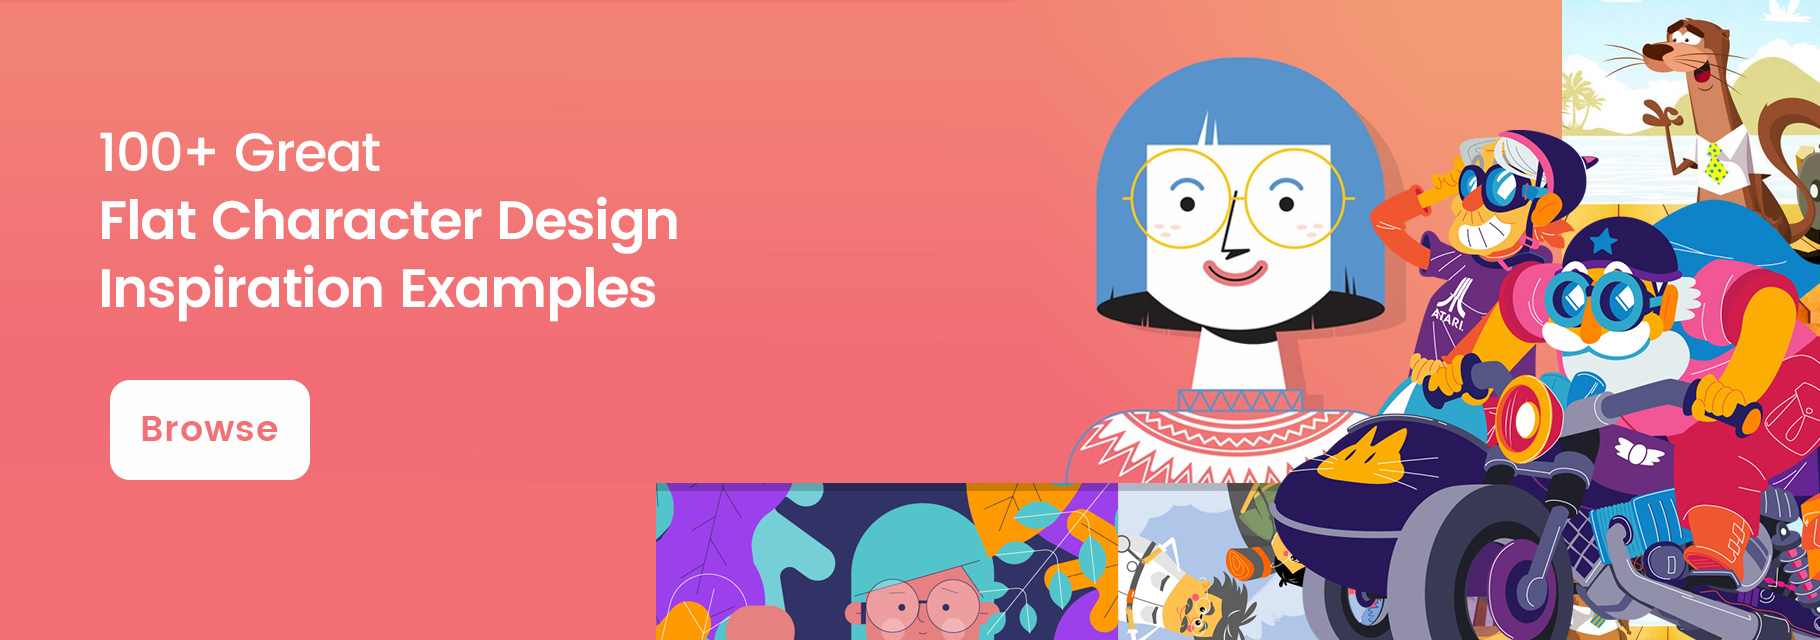 100+ flat character designs collection inspiration